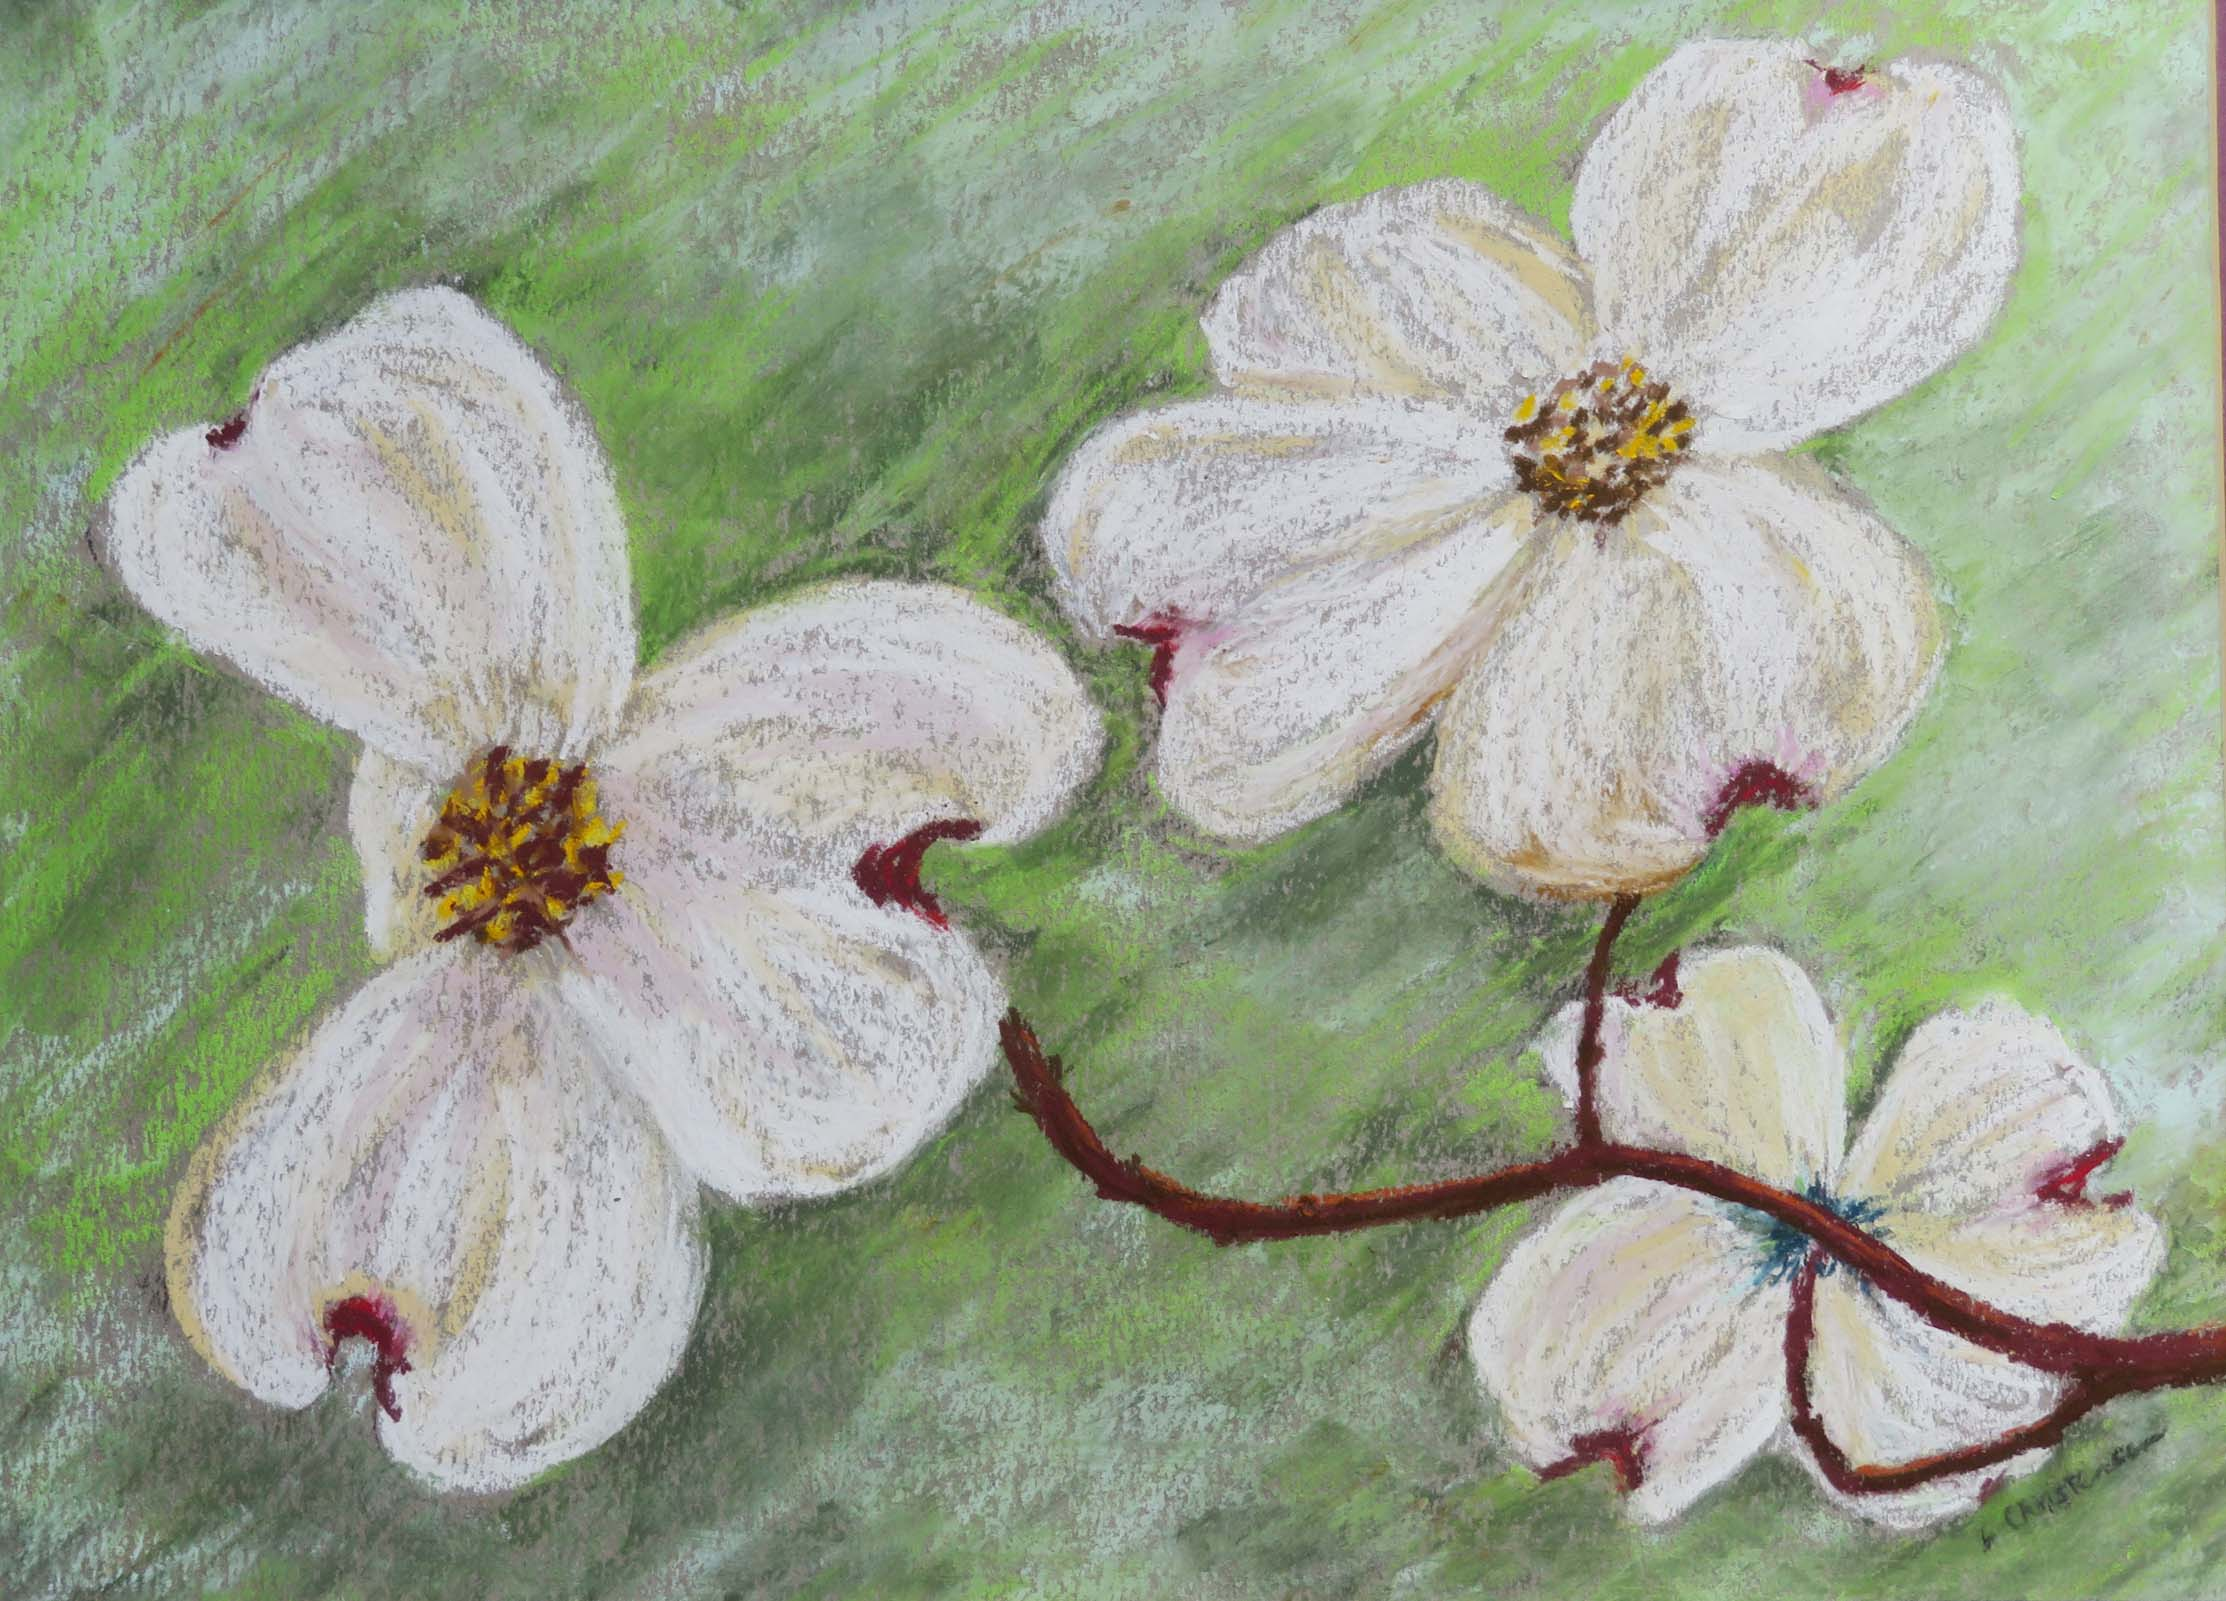 A Whiter Shade of Pale, Dogwood by   Libby J Christensen nfs